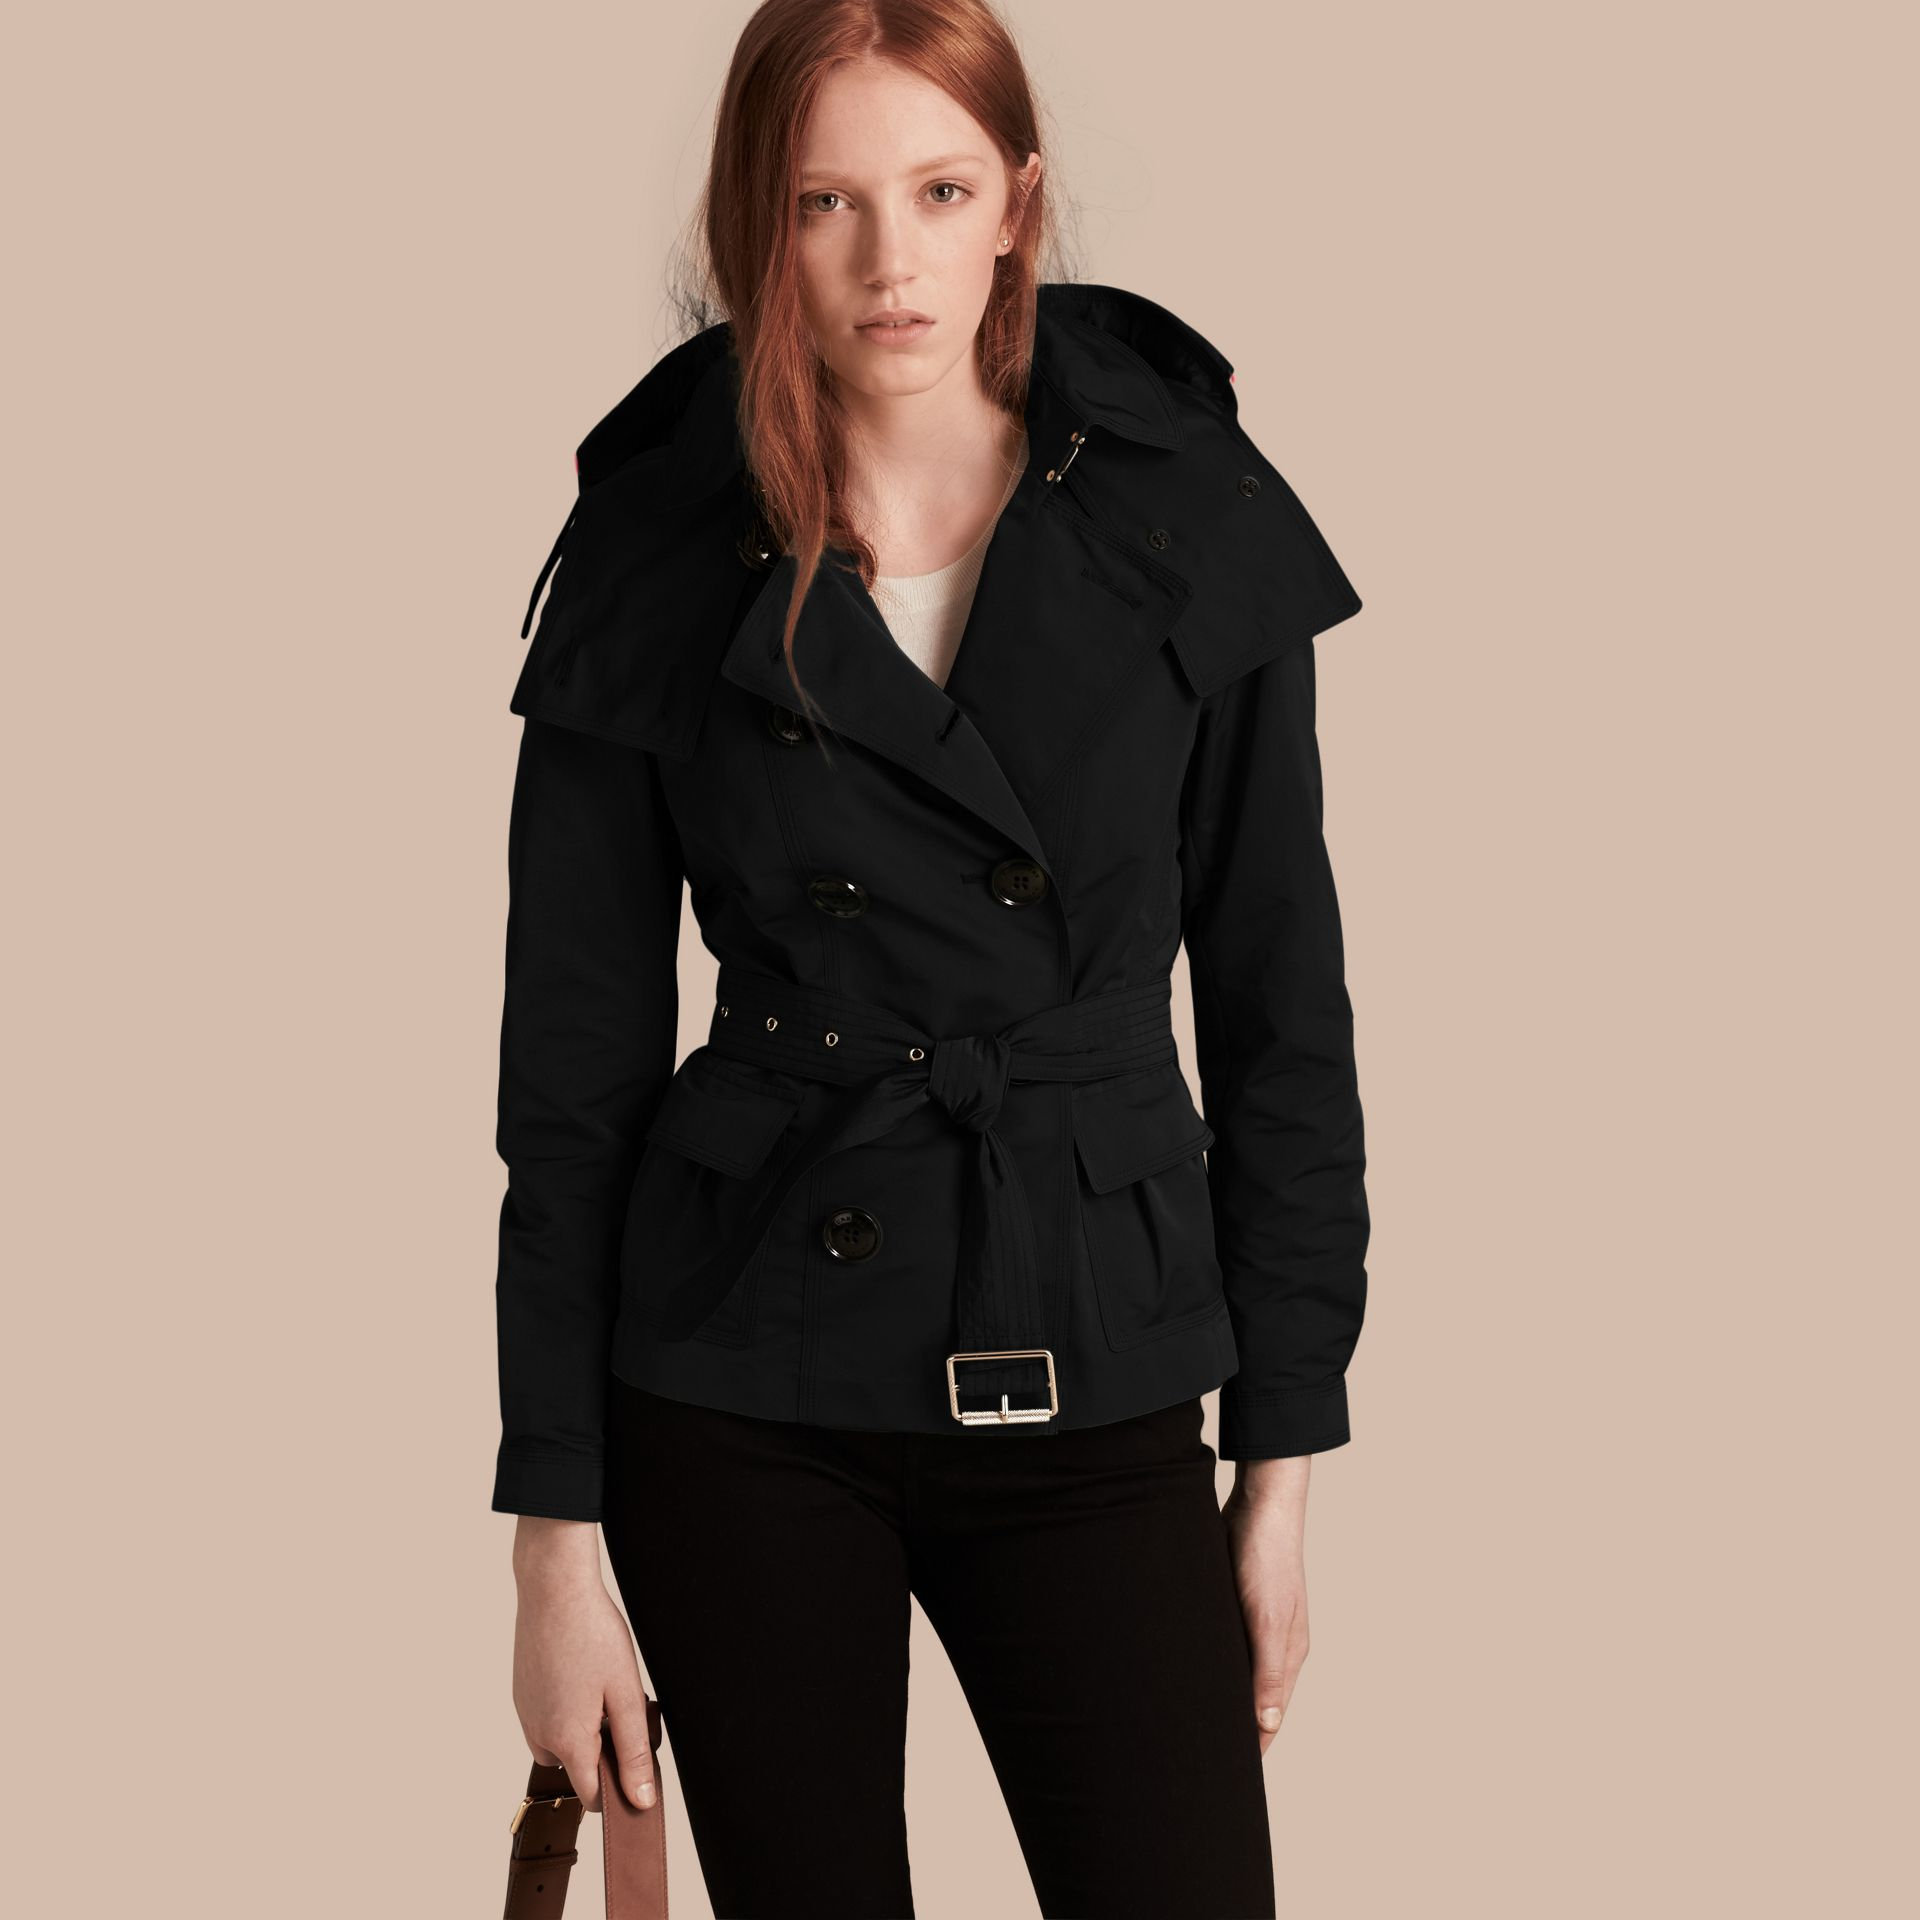 Showerproof Taffeta Trench Jacket with Detachable Hood in Black - gallery image 1